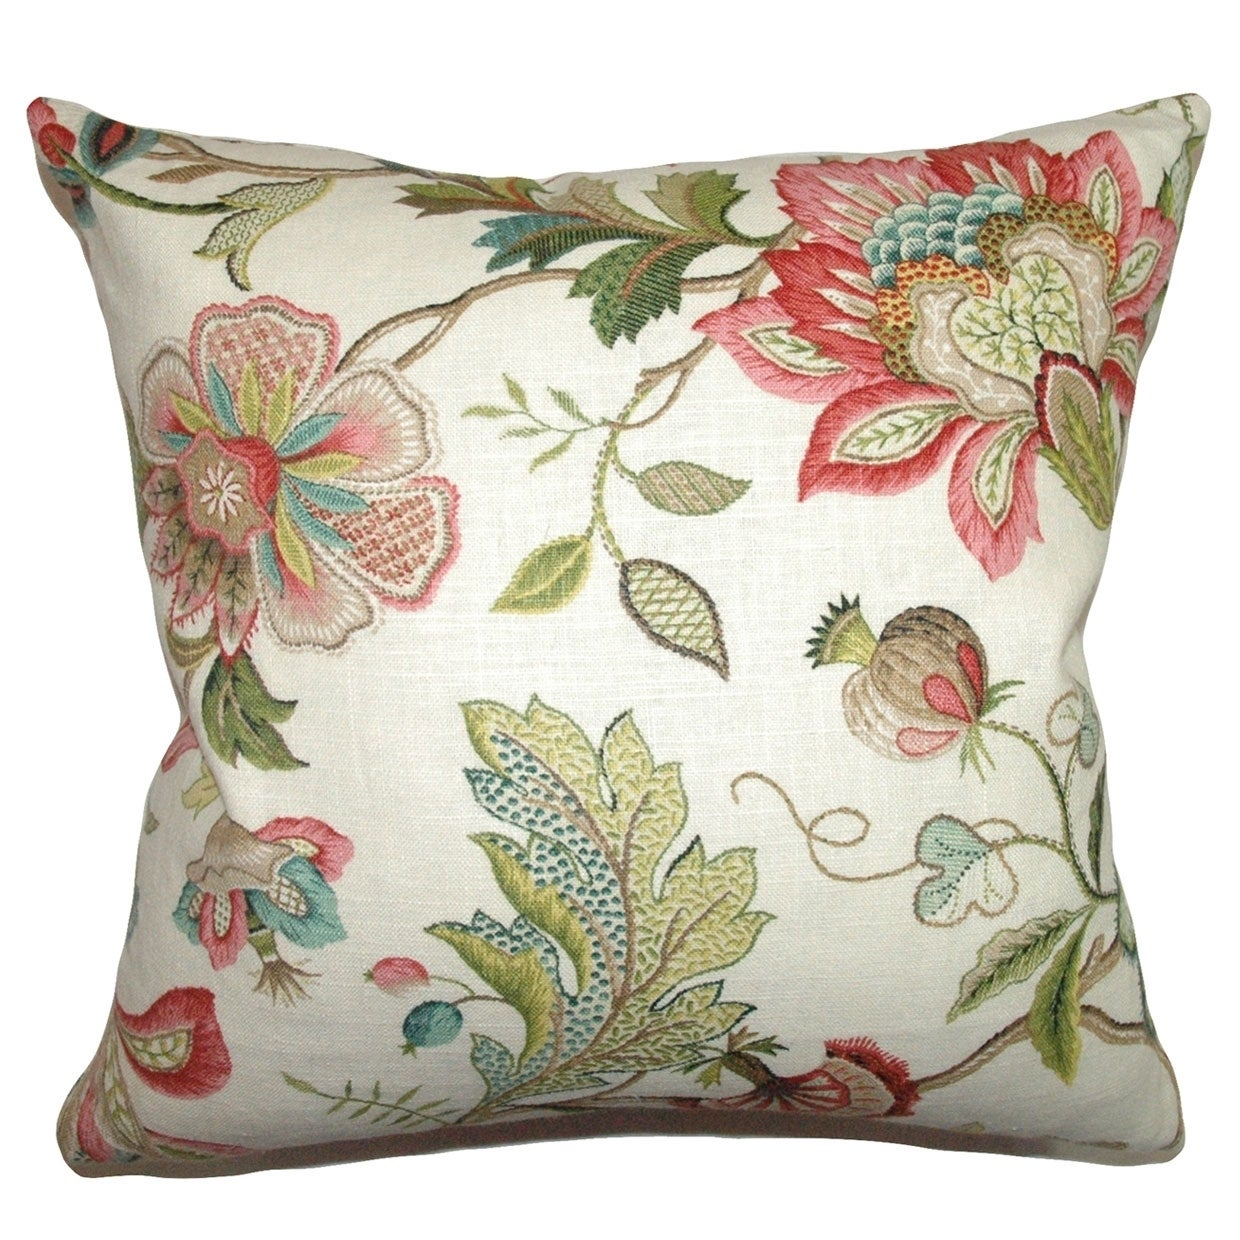 Adele Crewels Down Filled Throw Pillow Multi Overstock 9032432